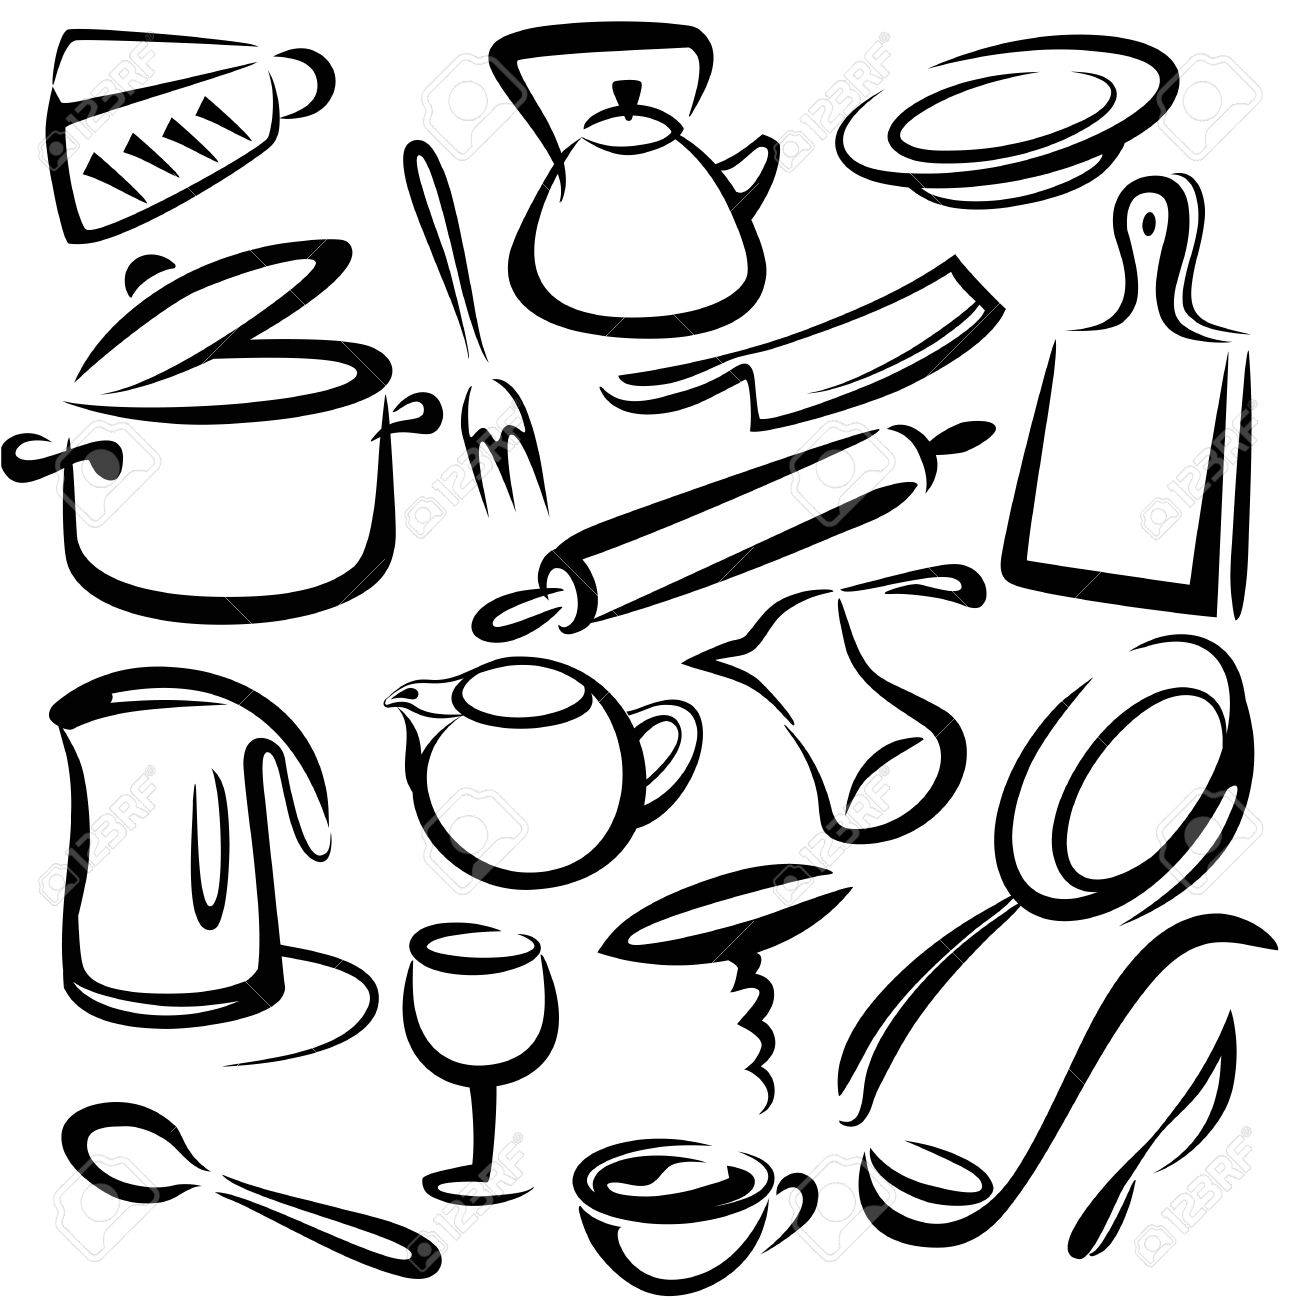 Kitchen tools drawing - Big Set Of Kitchen Tools Vector Sketch In Simple Black Lines Stock Vector 22336500